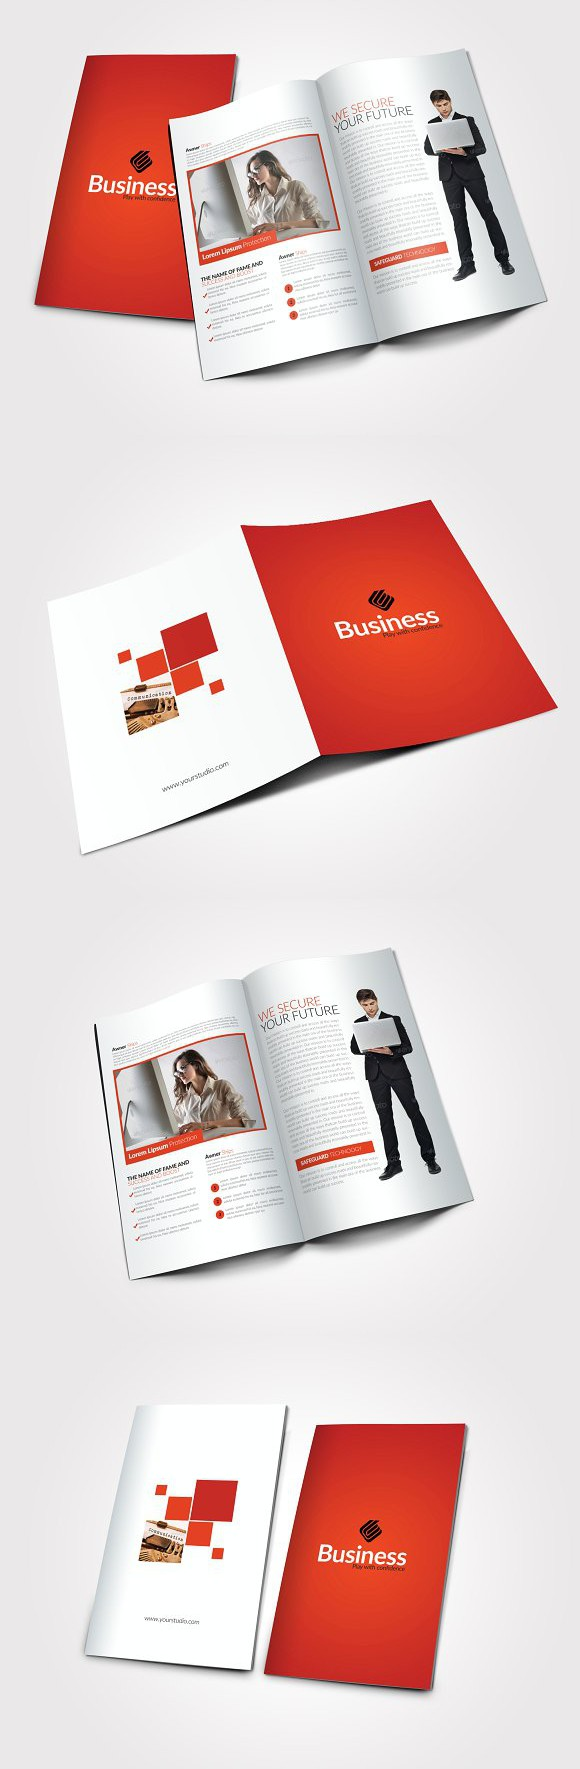 4 Pages Business Bi Fold Brochure | Brochures, Card templates and ...